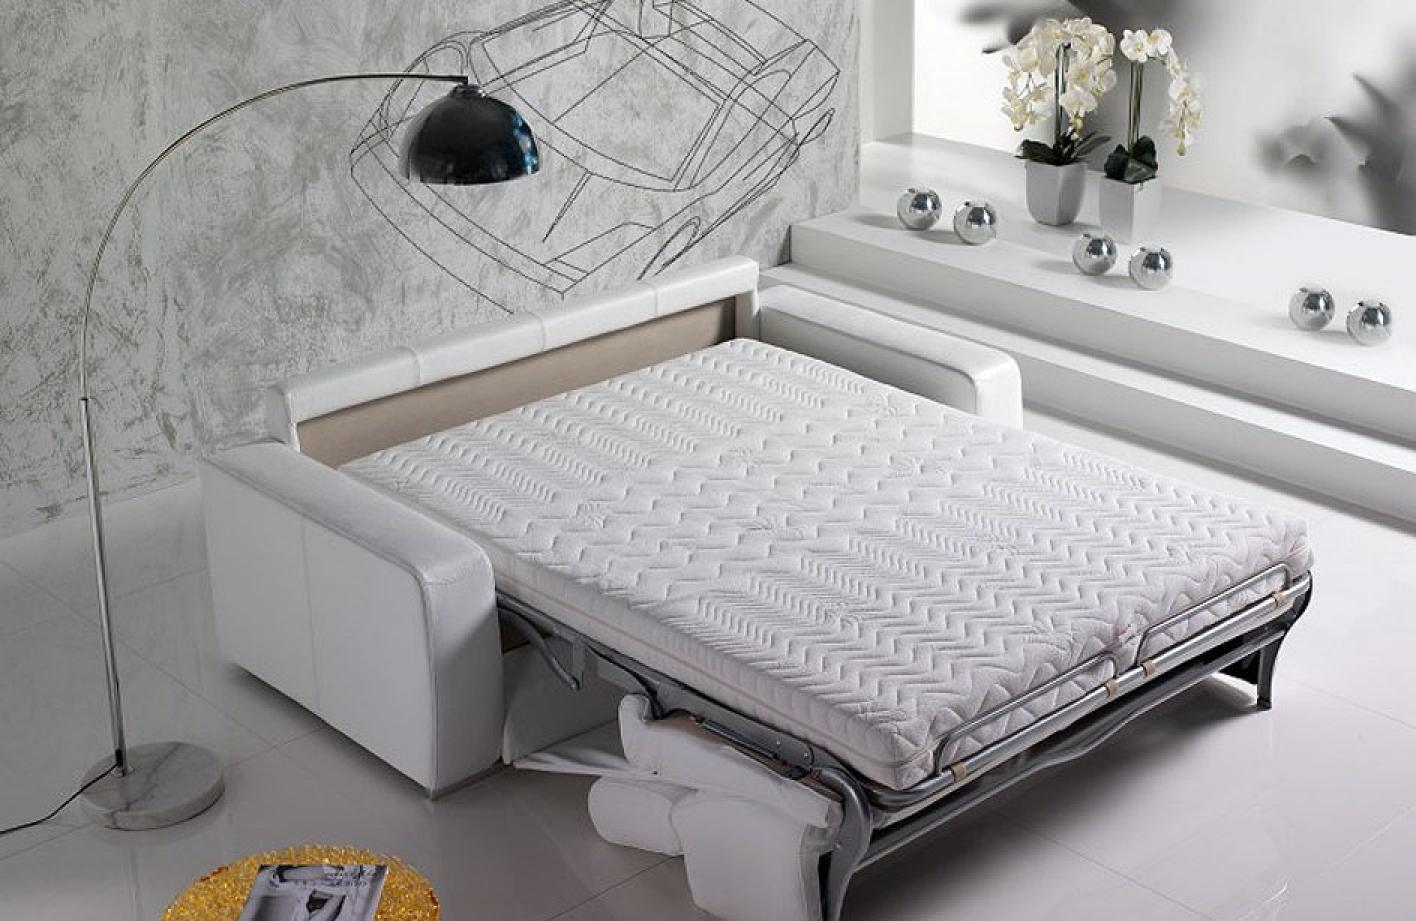 canap convertible vrai matelas best canap convertible avec un vrai matelas beautiful rsultat. Black Bedroom Furniture Sets. Home Design Ideas